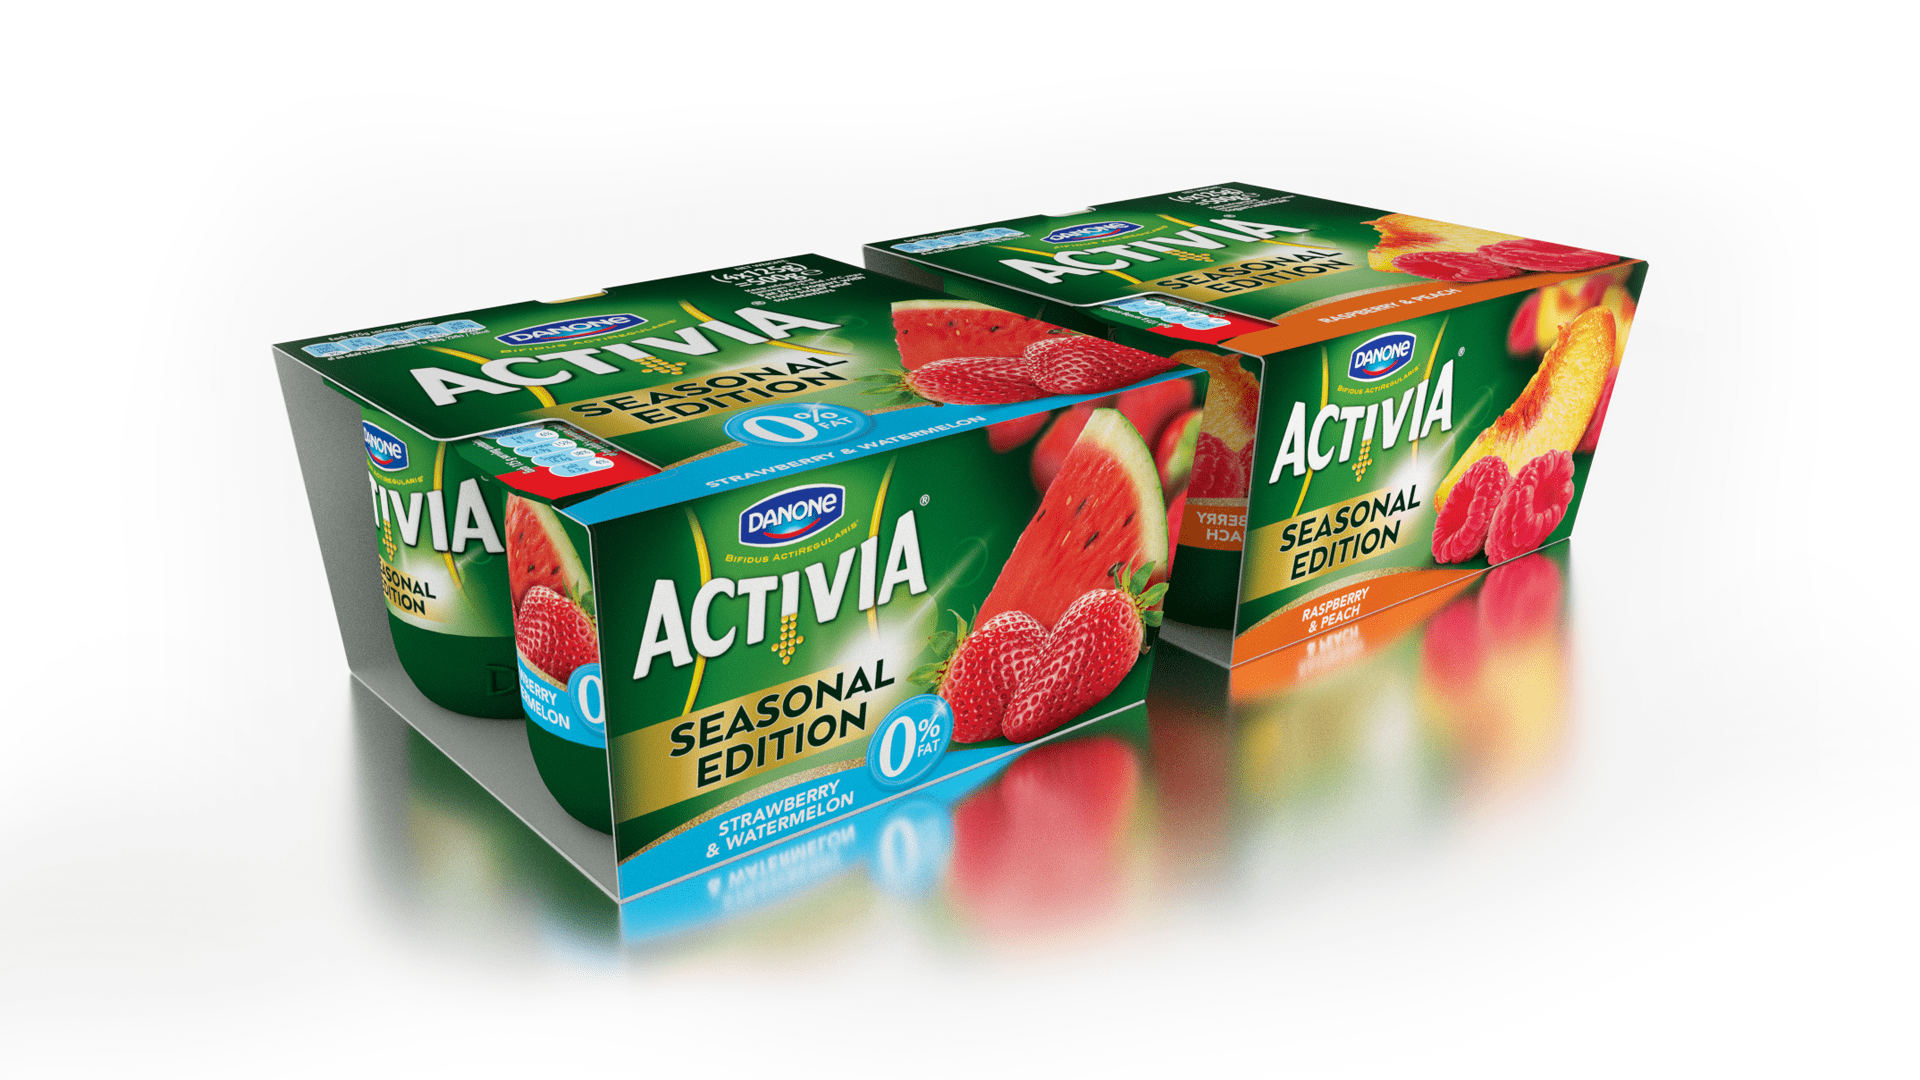 activia branding and packaging design